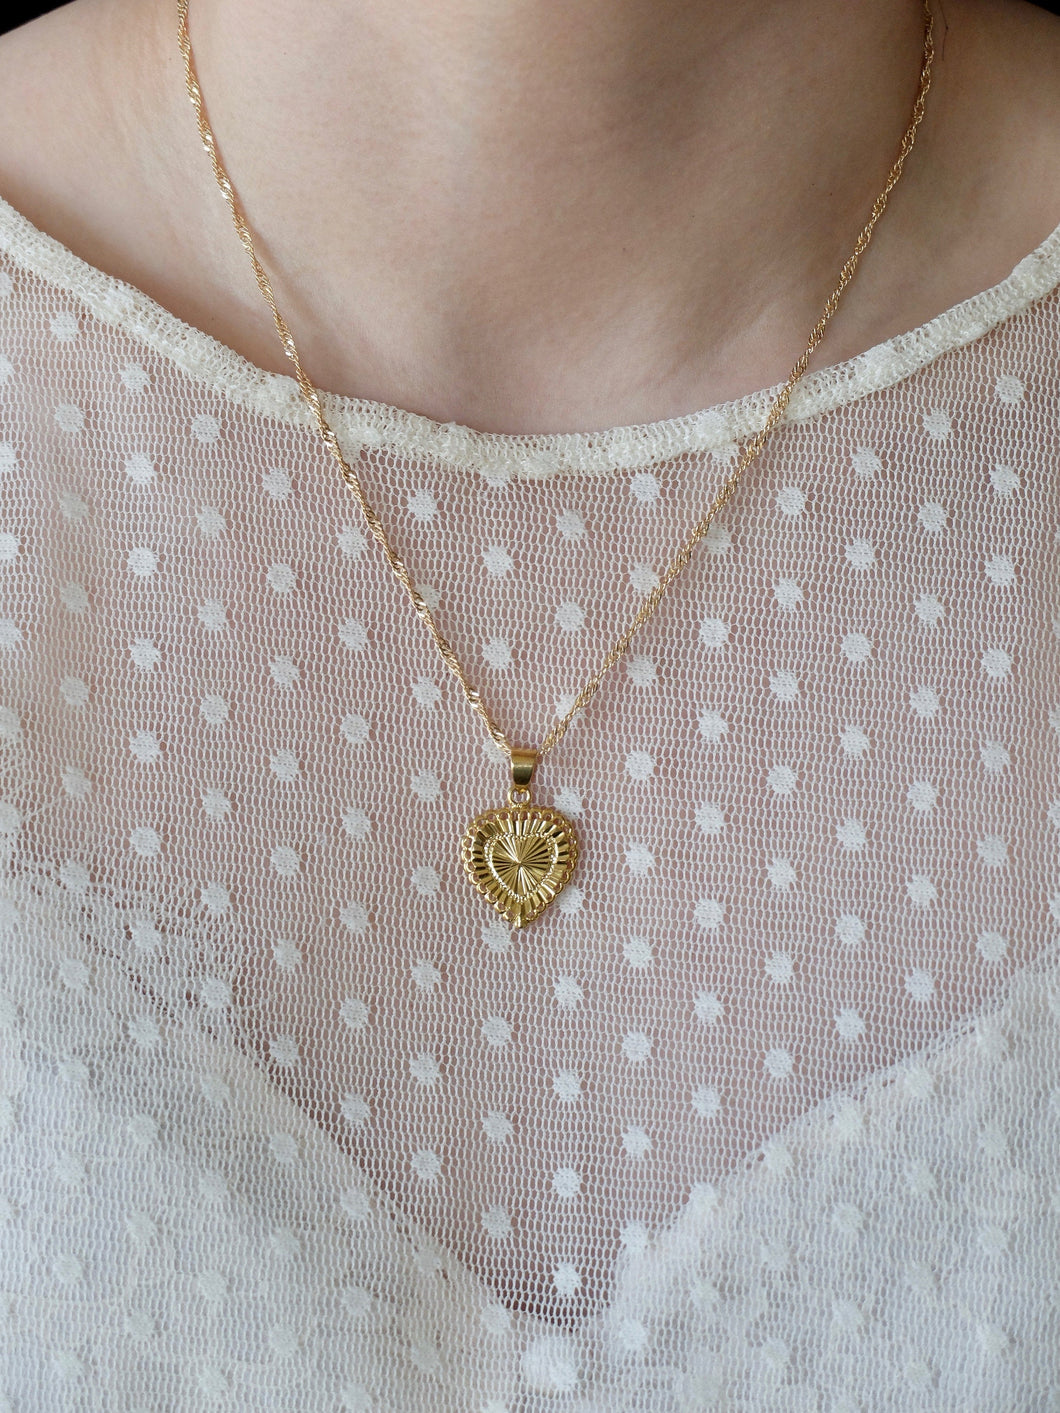 Gold Heart Medal Necklace